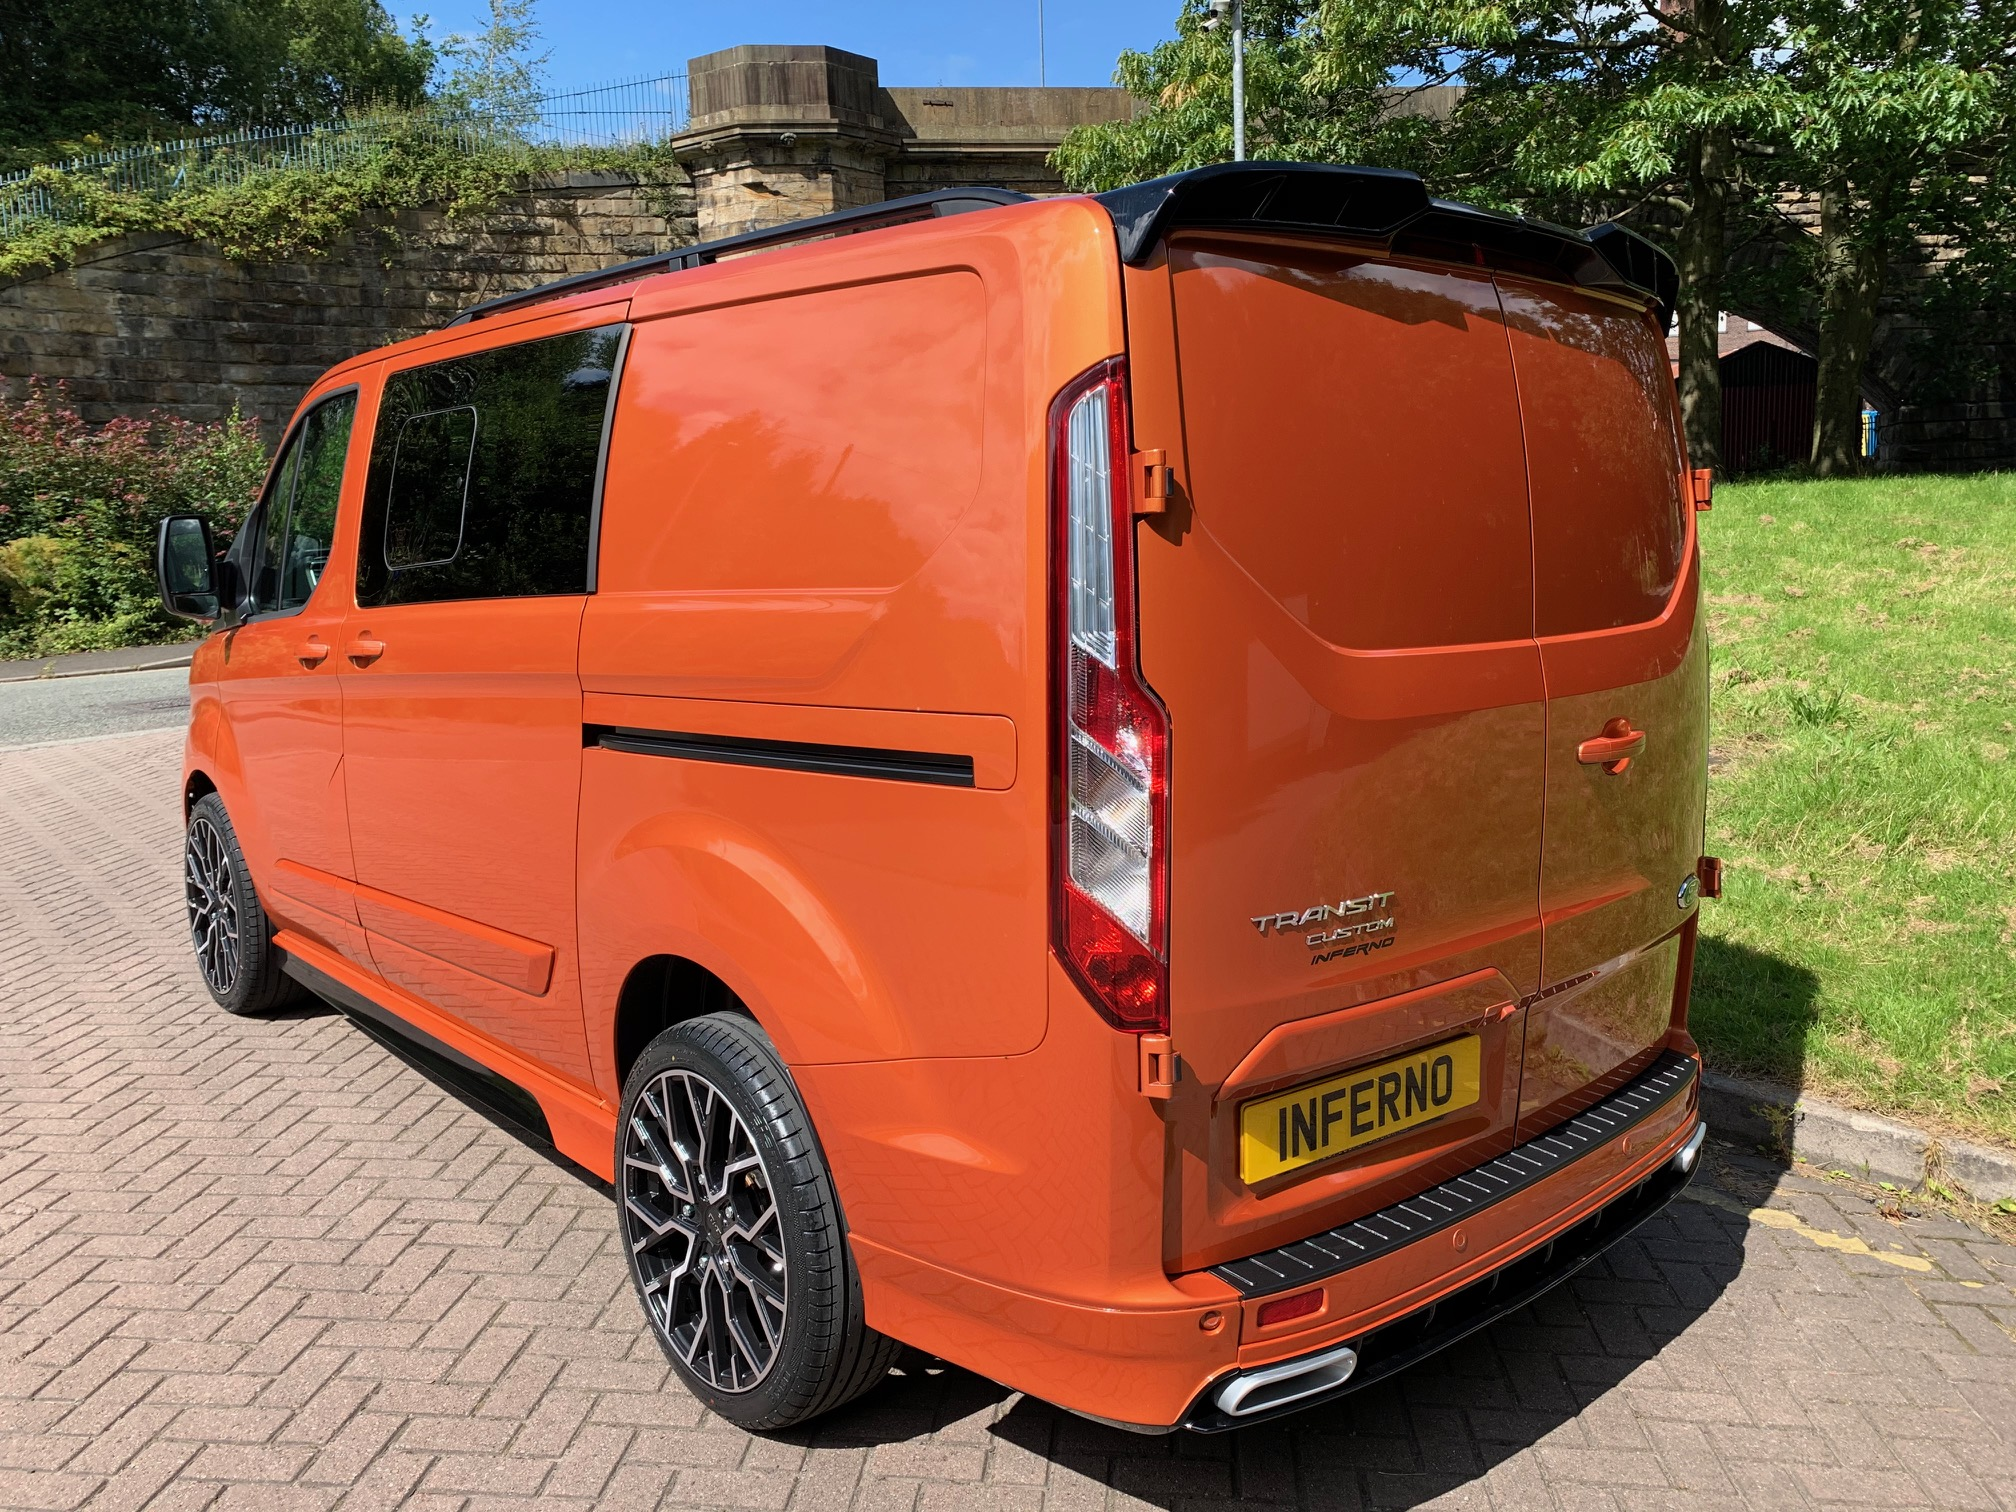 IMG_5266.jpg - Inferno X 320 L1 Double Cab In Van 2.0tdci 185 Limited Auto